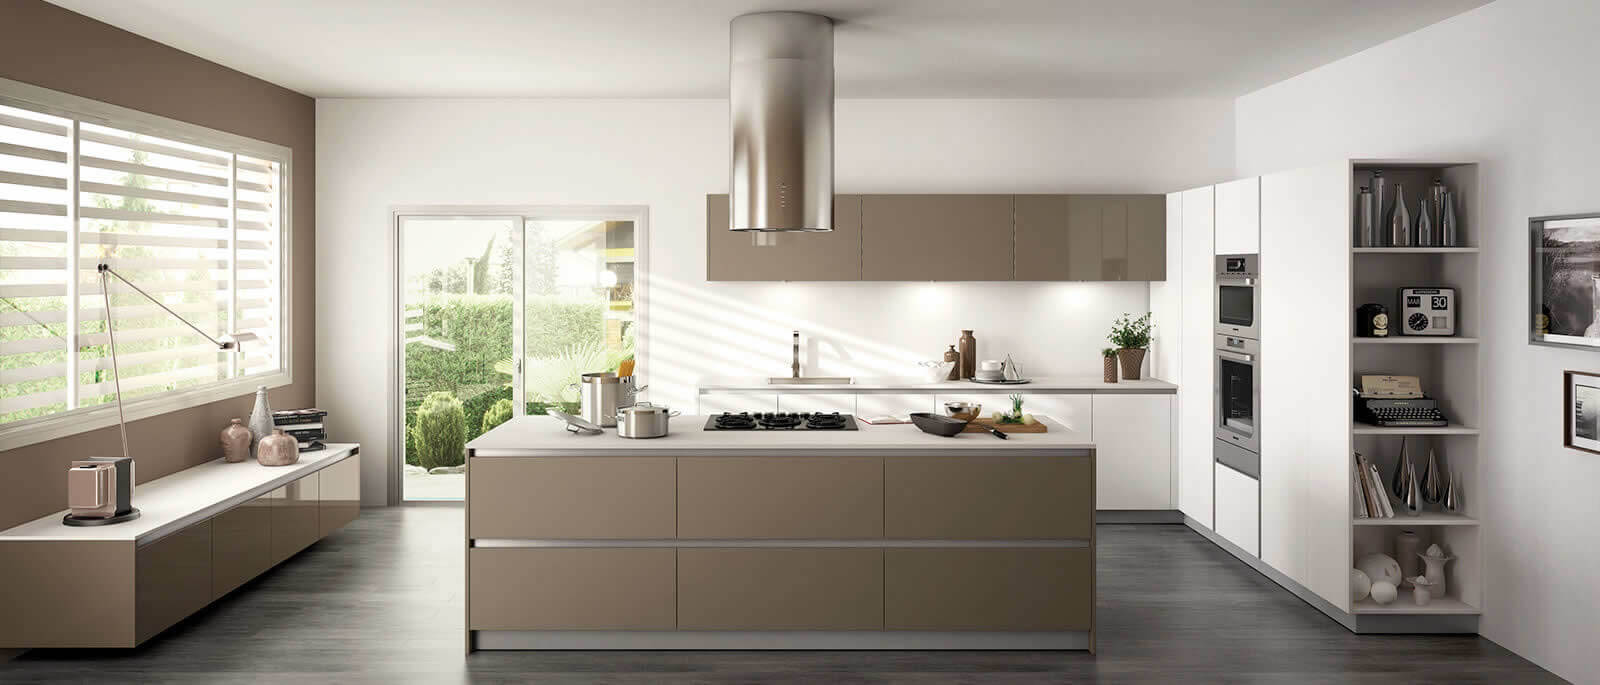 Kitchen Kitchens Nolan Kitchens Contemporary Kitchens Fitted Kitchens